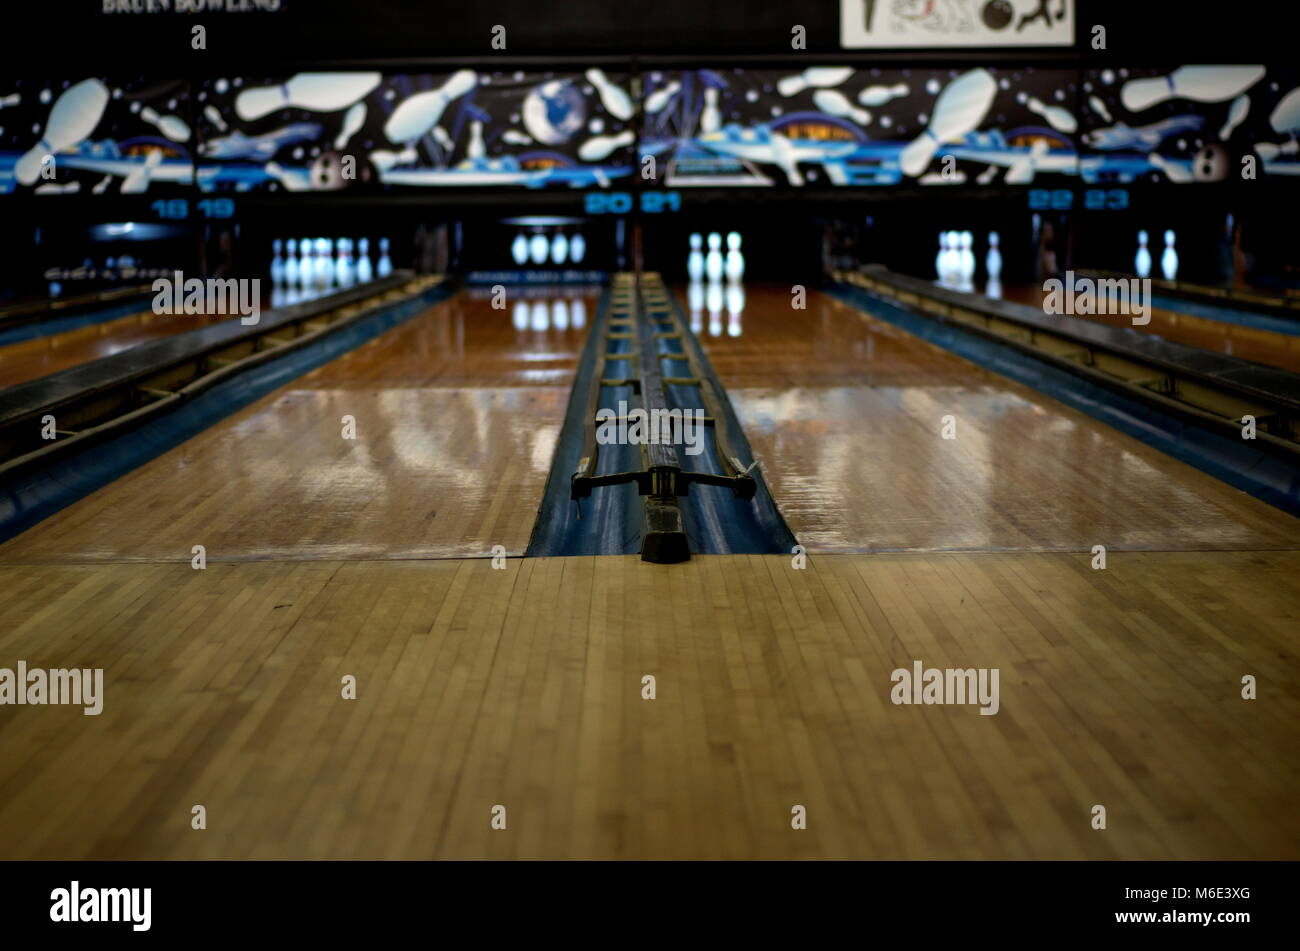 Bowling Pins Stock Photos & Bowling Pins Stock Images - Alamy